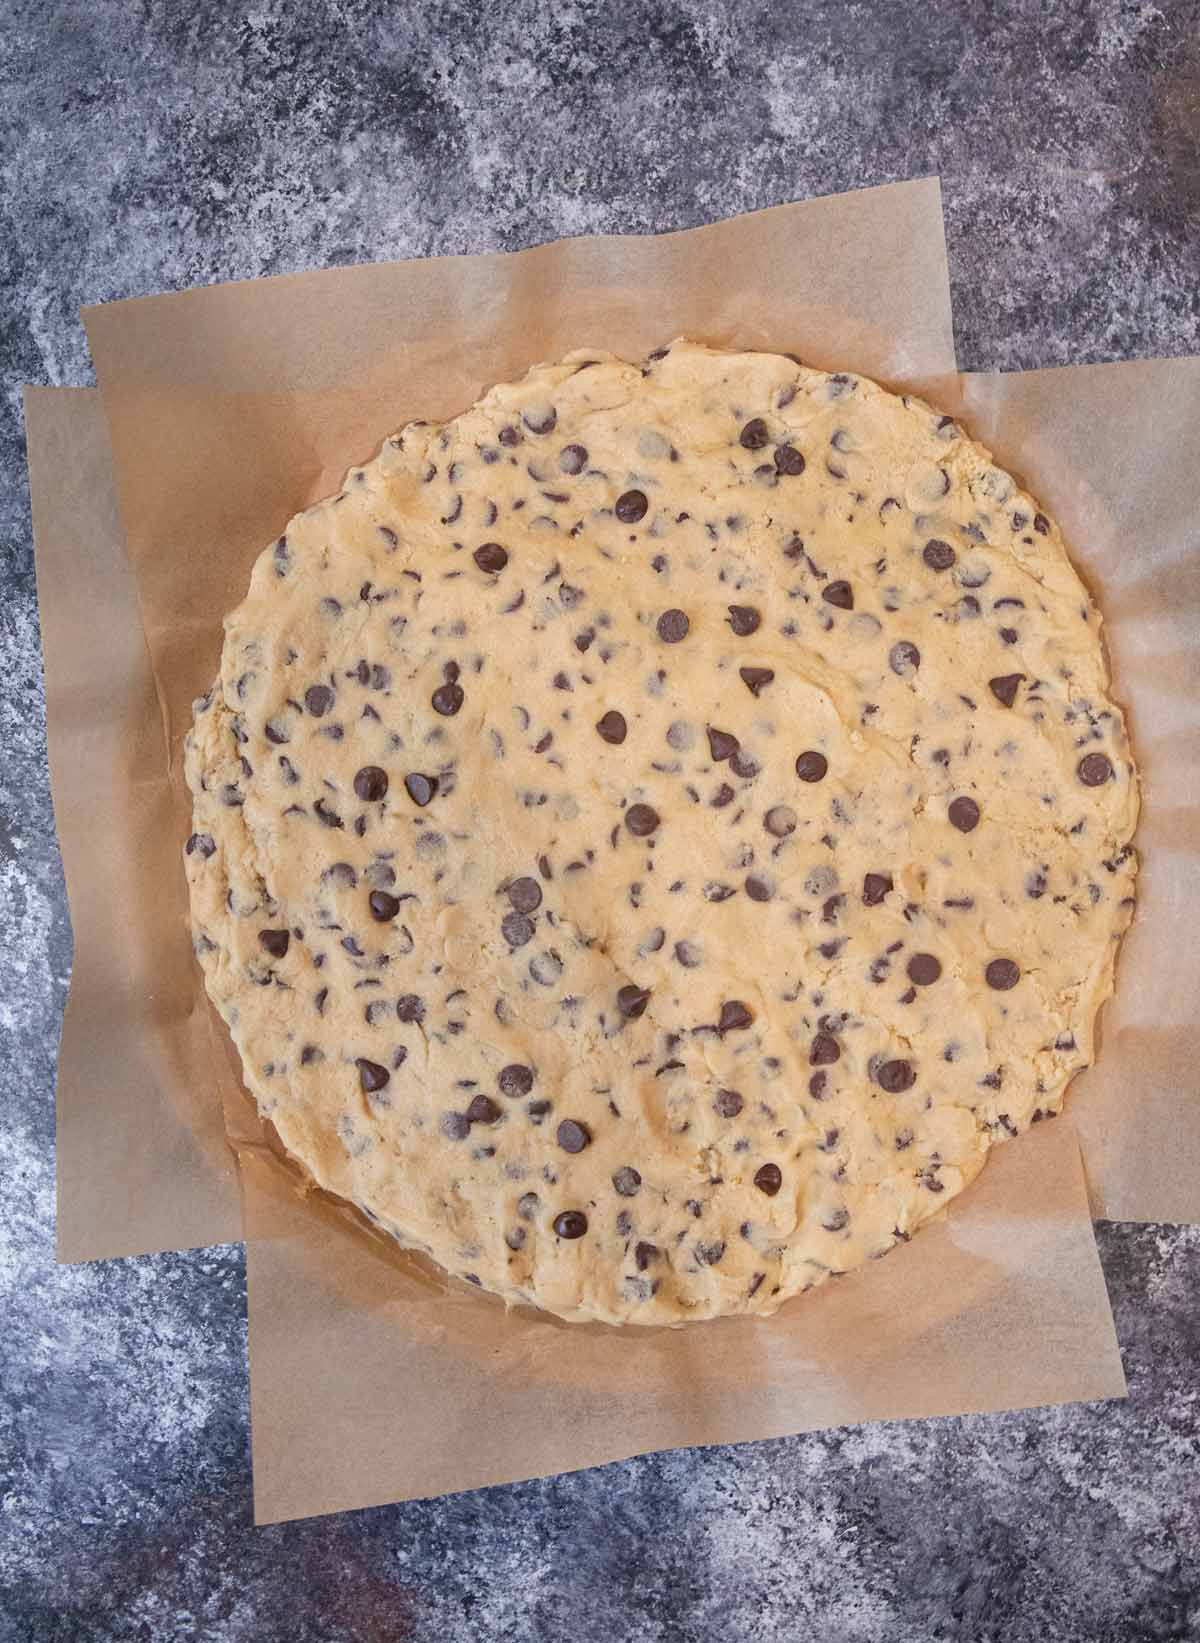 Giant Chocolate Chip Cookie dough on parchment paper